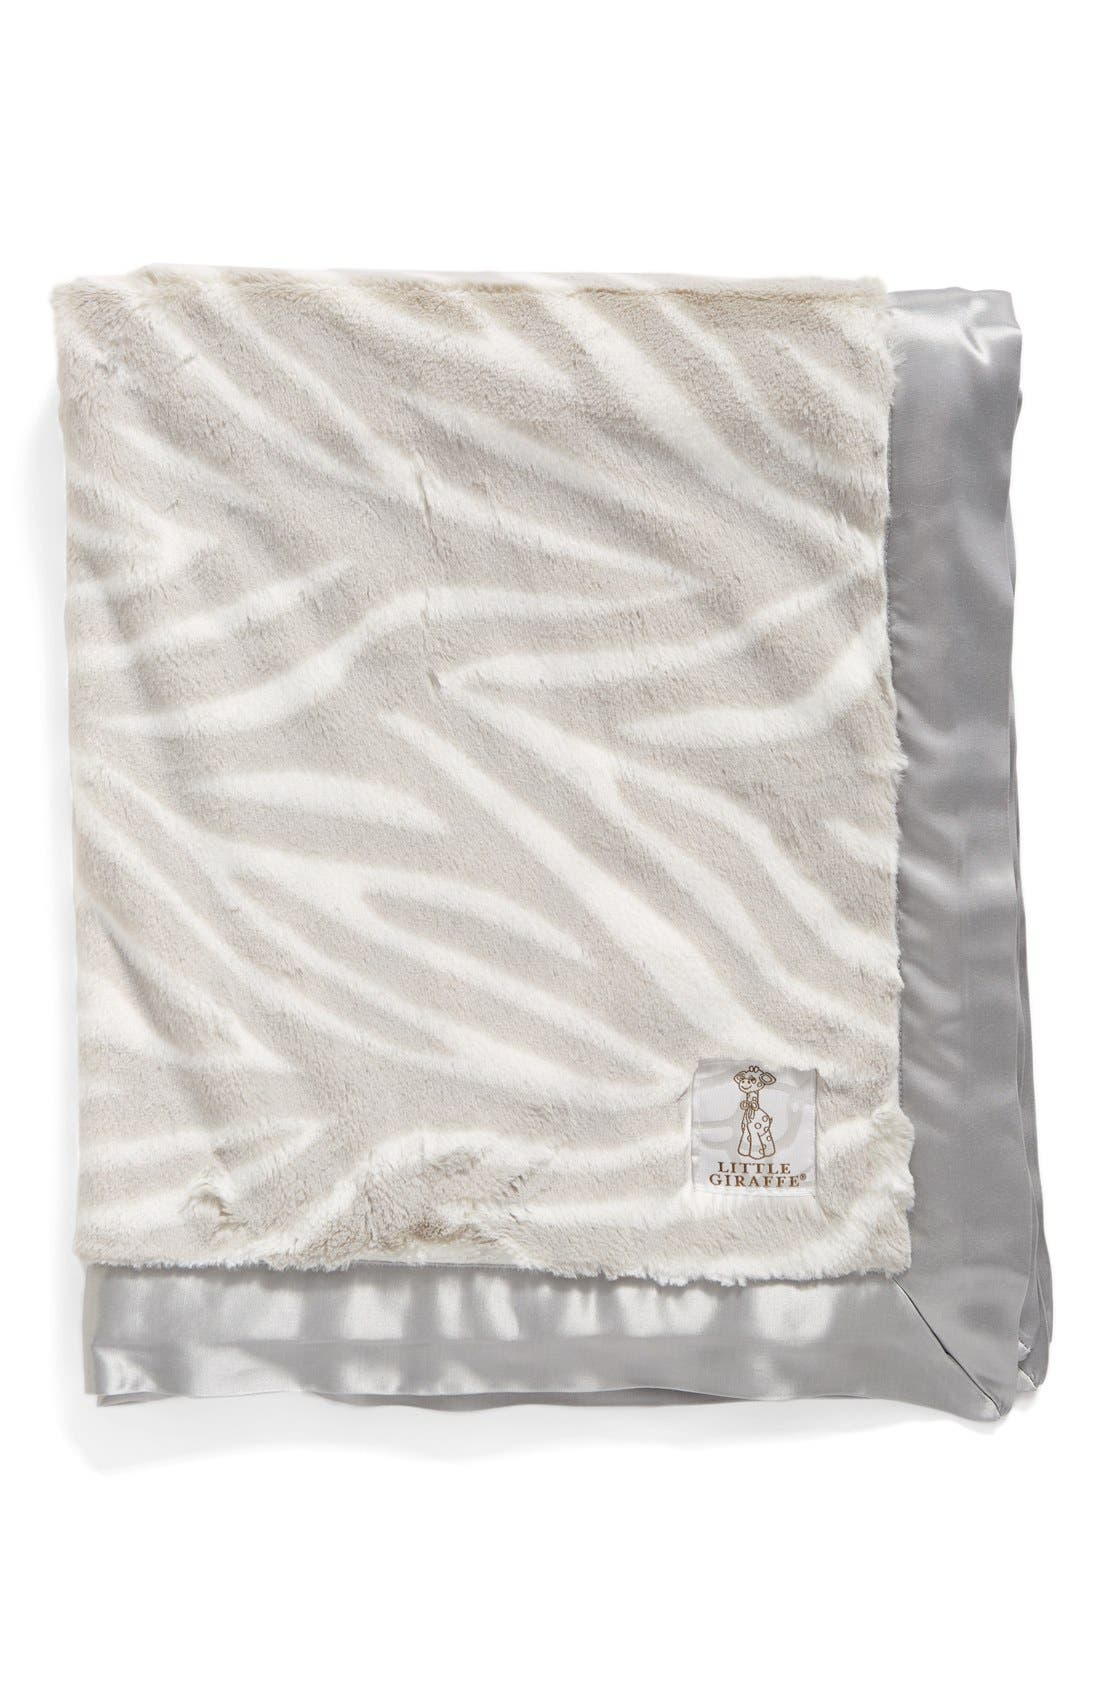 Luxe<sup>™</sup> Zebra Print Blanket,                             Main thumbnail 1, color,                             SILVER